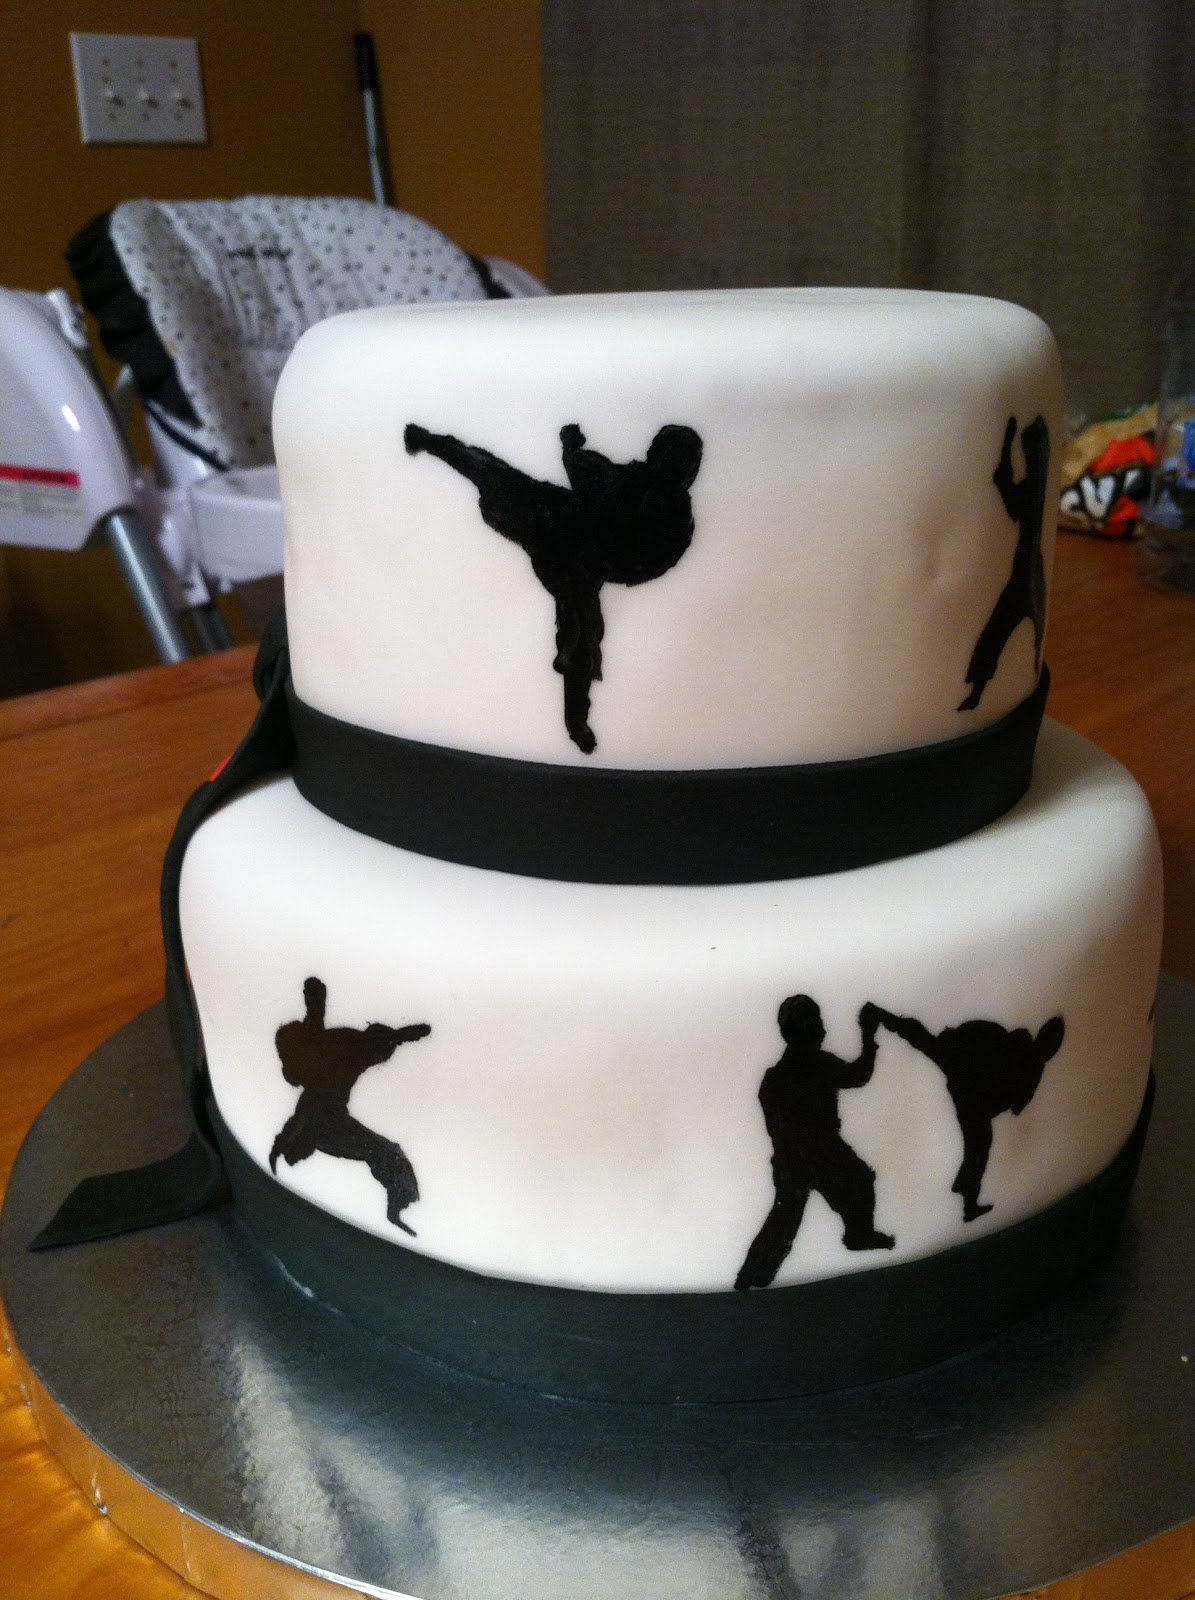 Introducing....: Karate Cakes